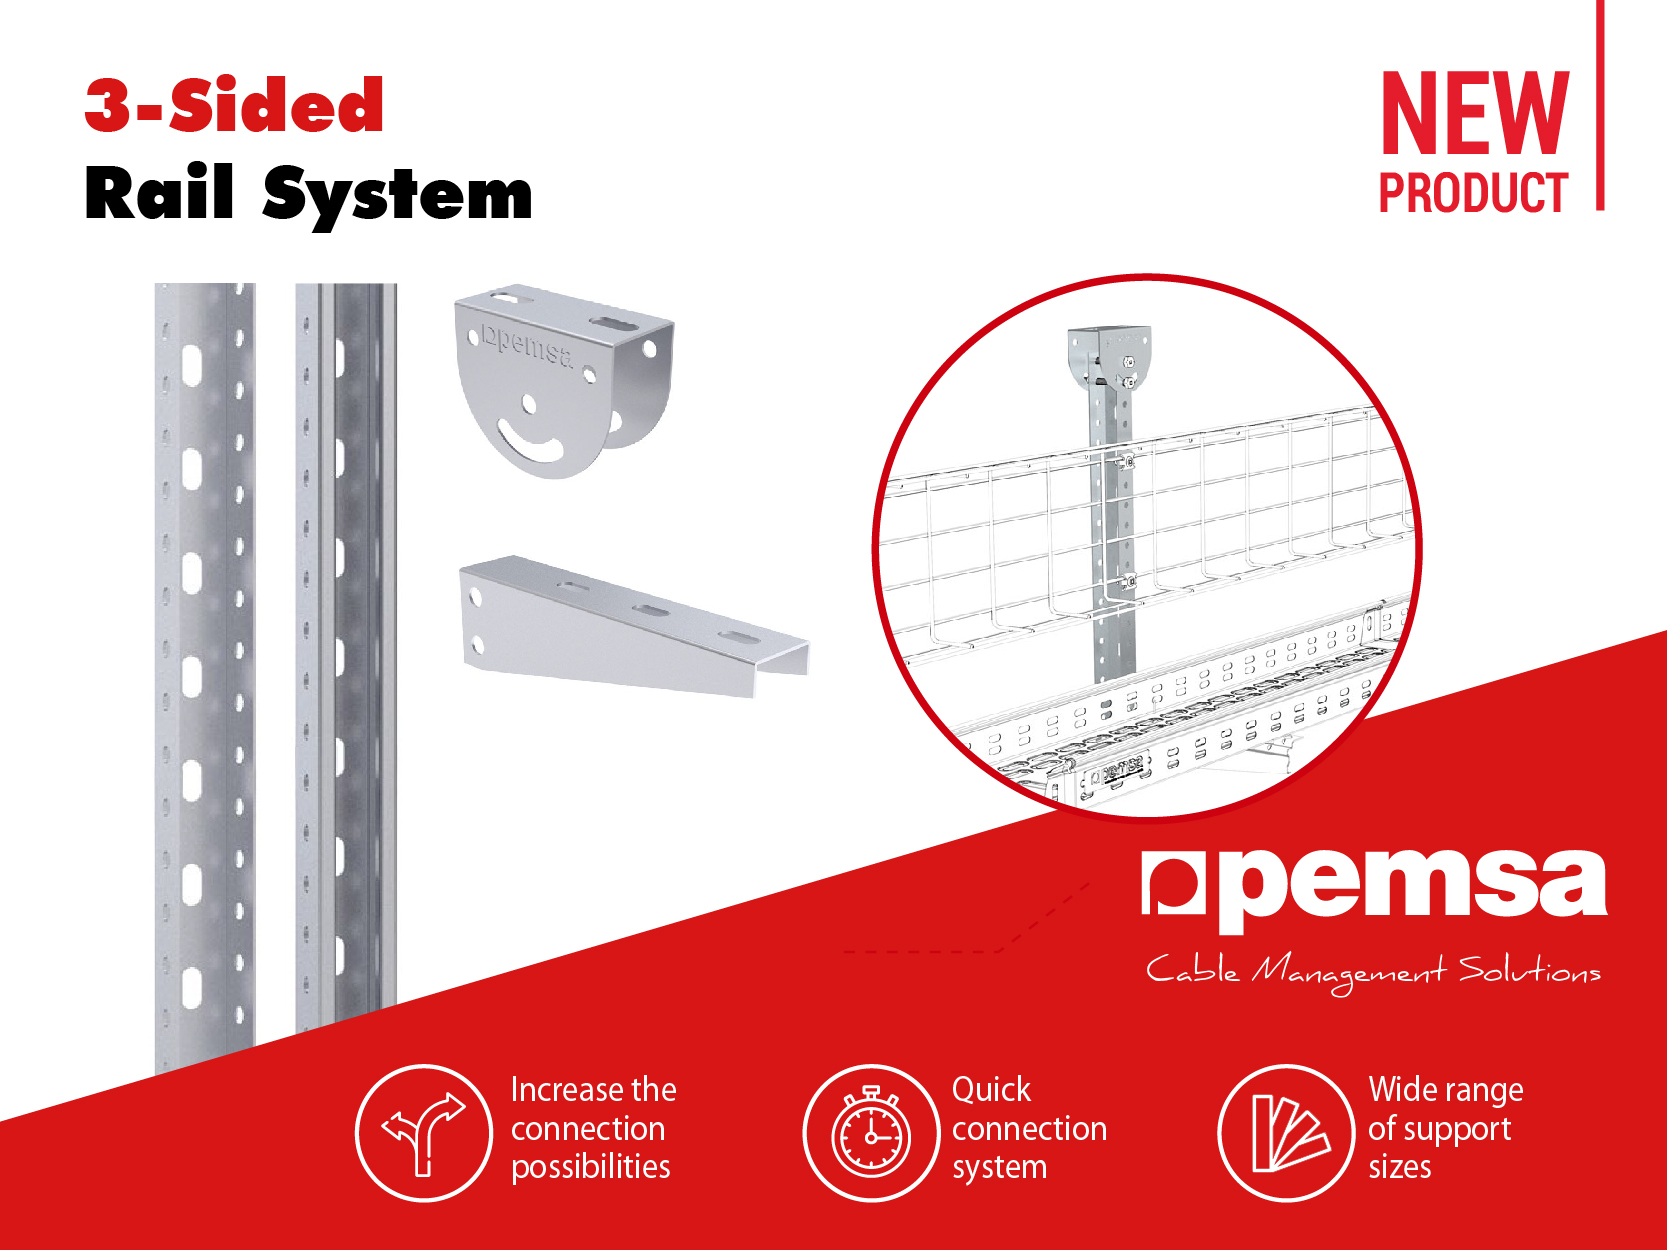 Pemsa Presents the new 3-Sided Rail System